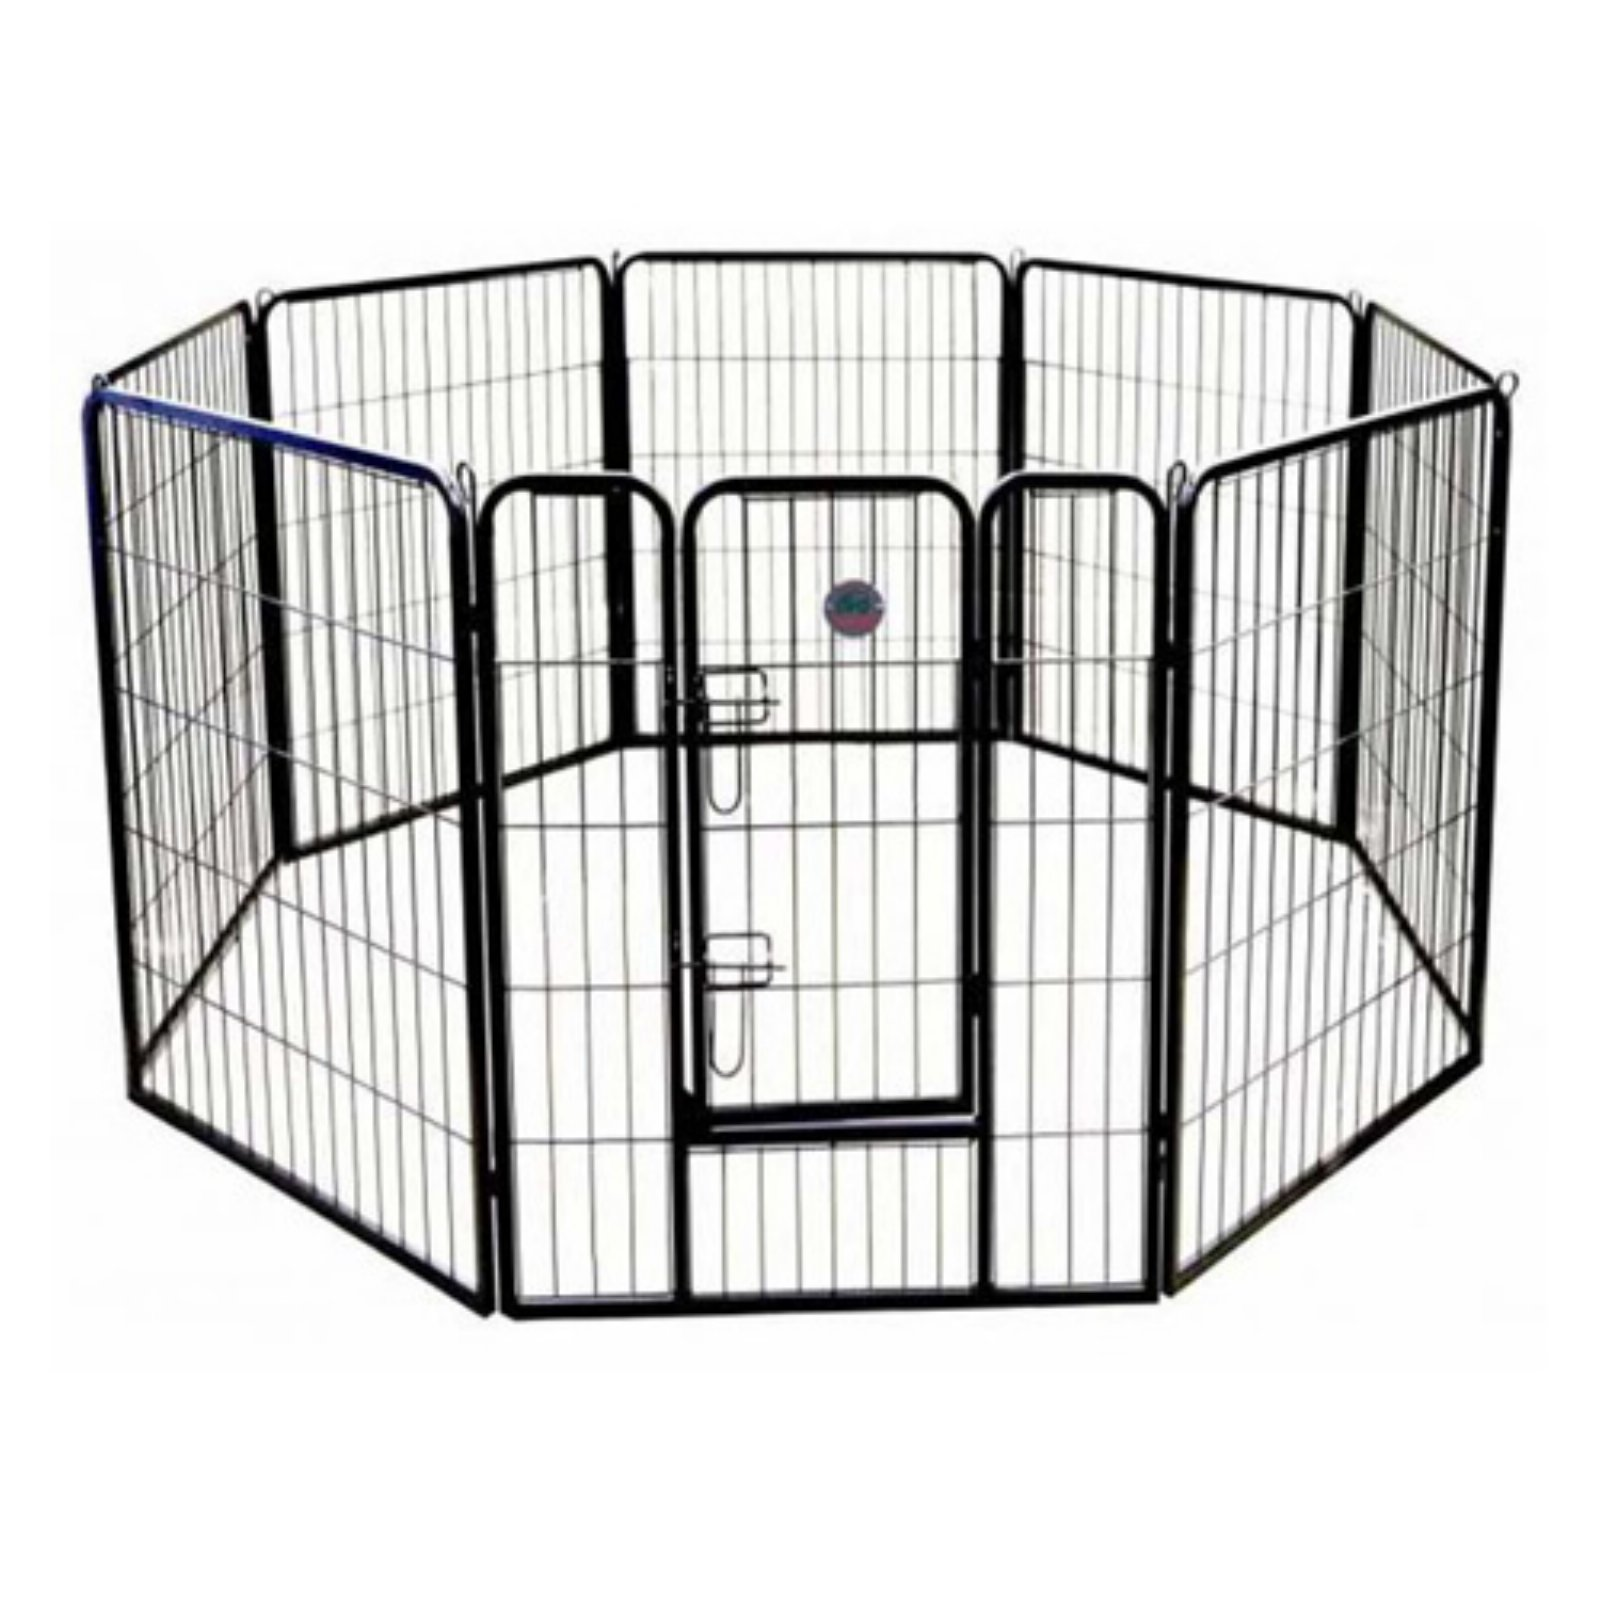 Go Pet Club GH Heavy Duty Pet Play and Exercise Pen with 8 Panels